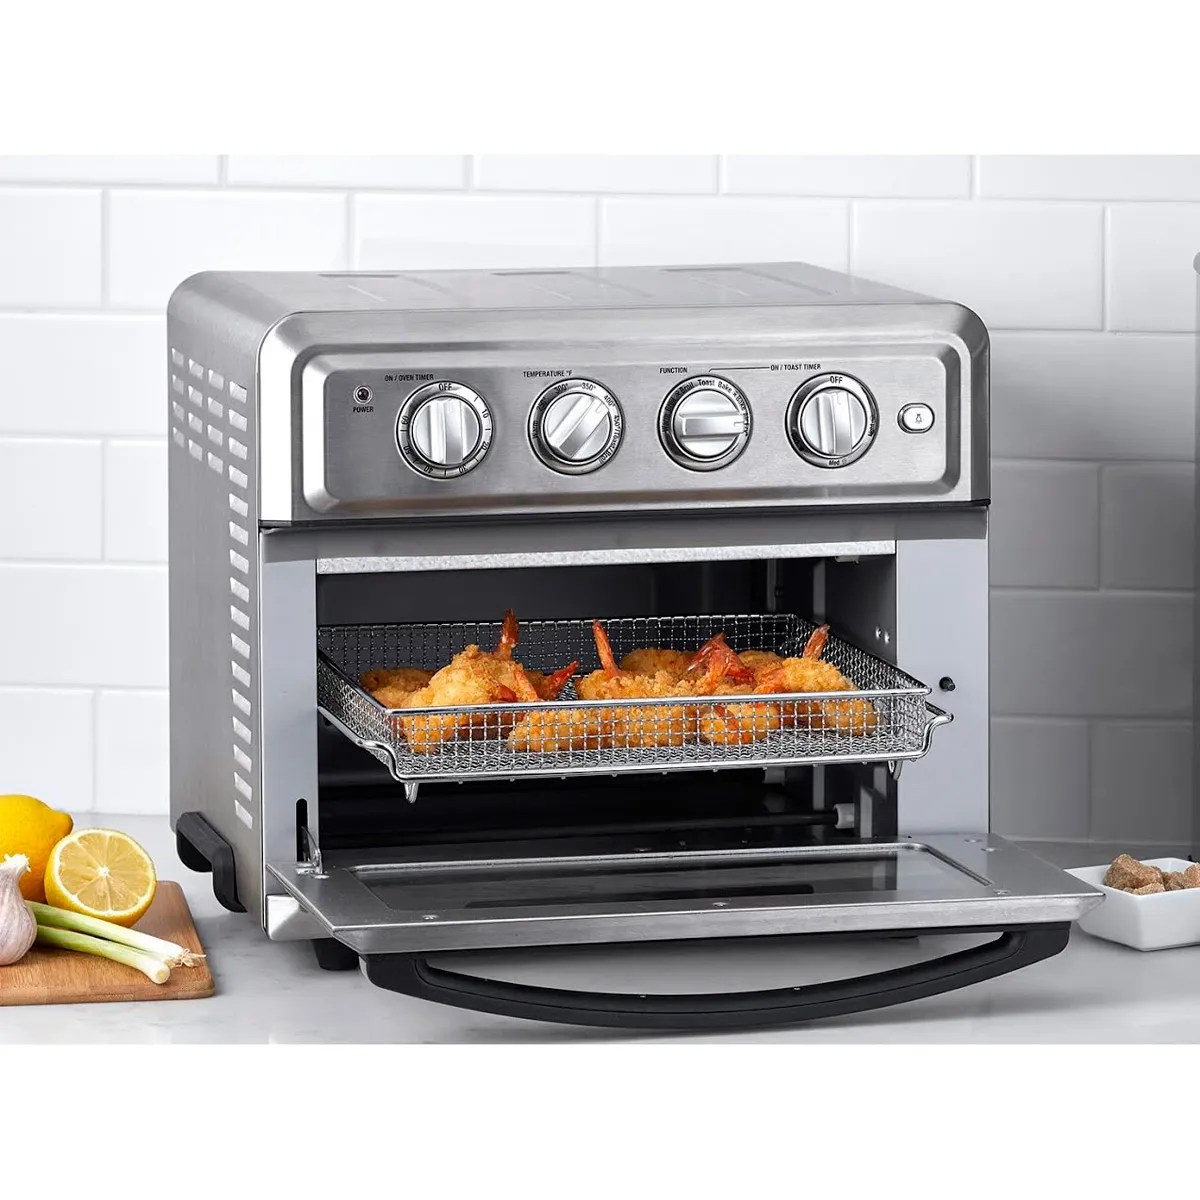 Cuisinart Air Fryer Oven Cuisinart Air Fryer Toaster Oven From Sportys Preferred